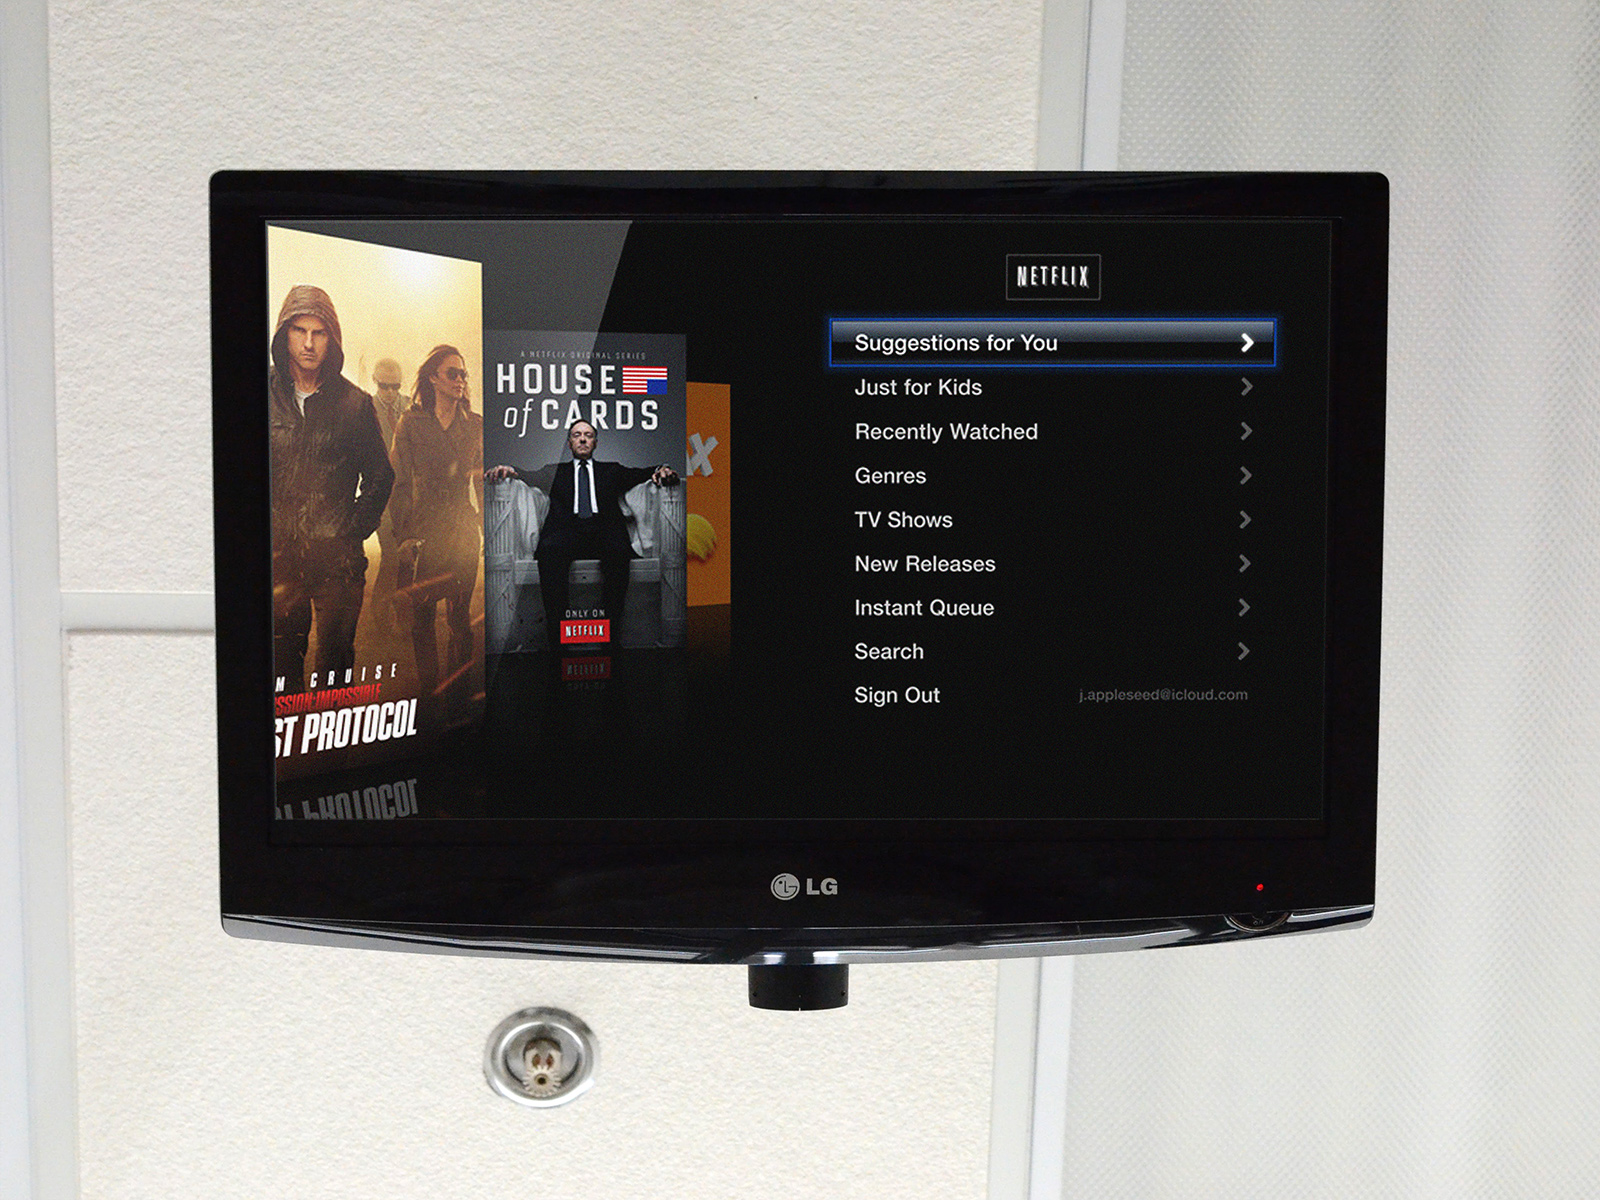 Netflix on a ceiling mounted TV